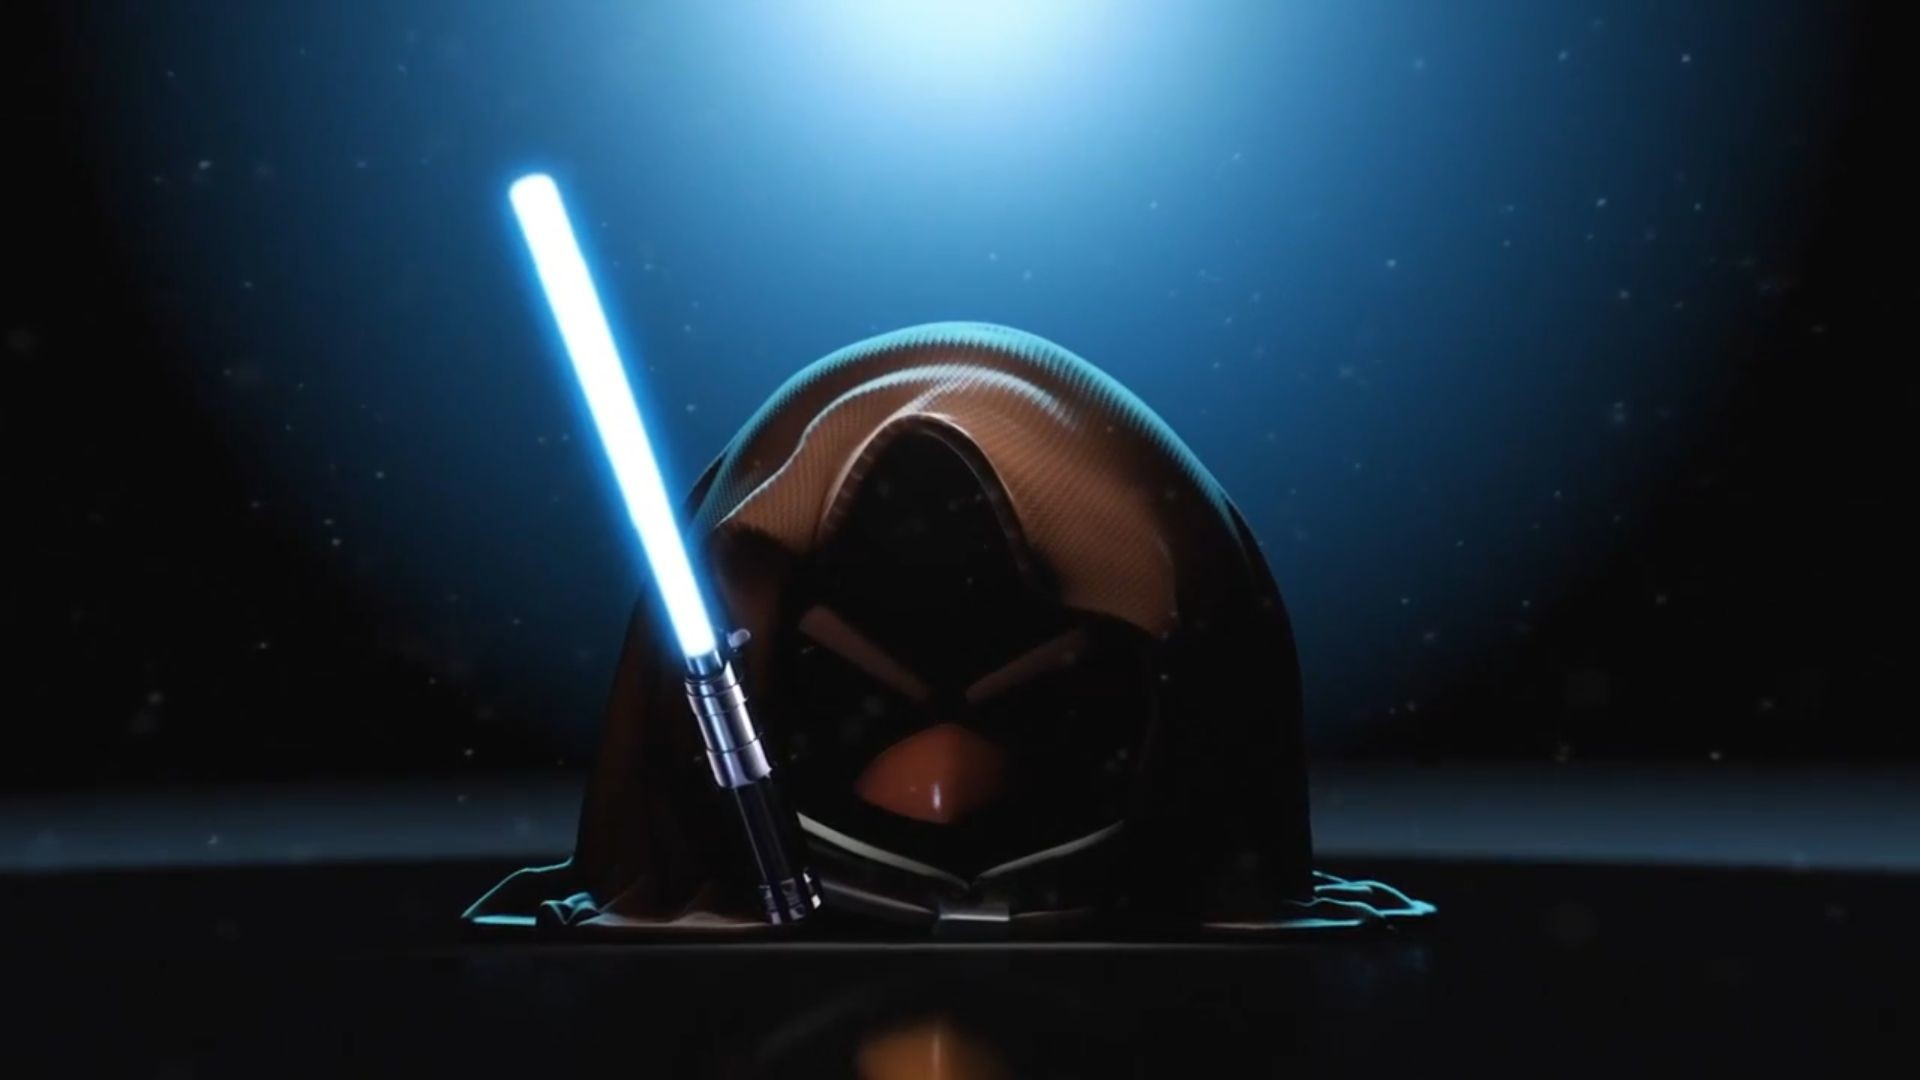 Download. Â« Angry Birds Star Wars Widescreen HD Wallpaper · Angry Birds Star  Wars Desktop …